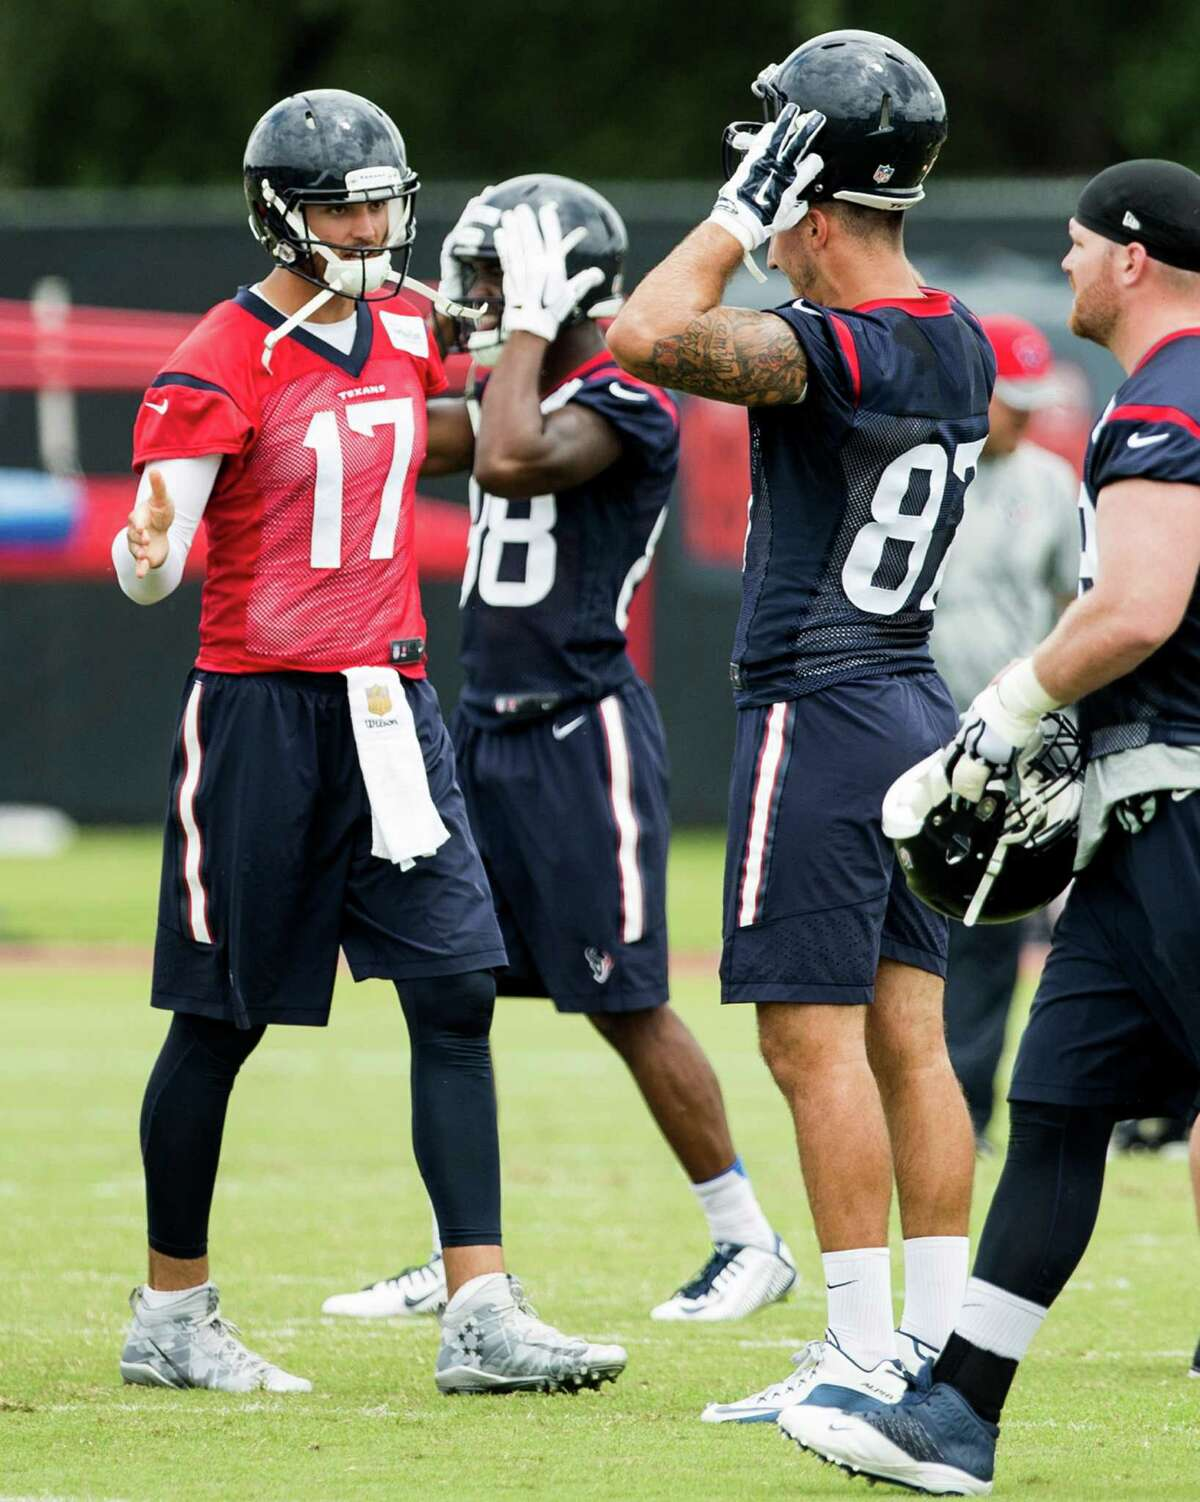 Brock Osweiler living up to the billing Quarterback Brock Osweiler (left) has been everything the coaches wanted him to be since he signed for $72 million, including $37 million guaranteed. He got to the facility at 5:30 a.m. for 7 a.m. meetings and stayed late. He worked hard on the practice field and in the meeting room. He did a lot of things with his teammates off the field. Leadership is something Bill O'Brien demands from his starting quarterback.